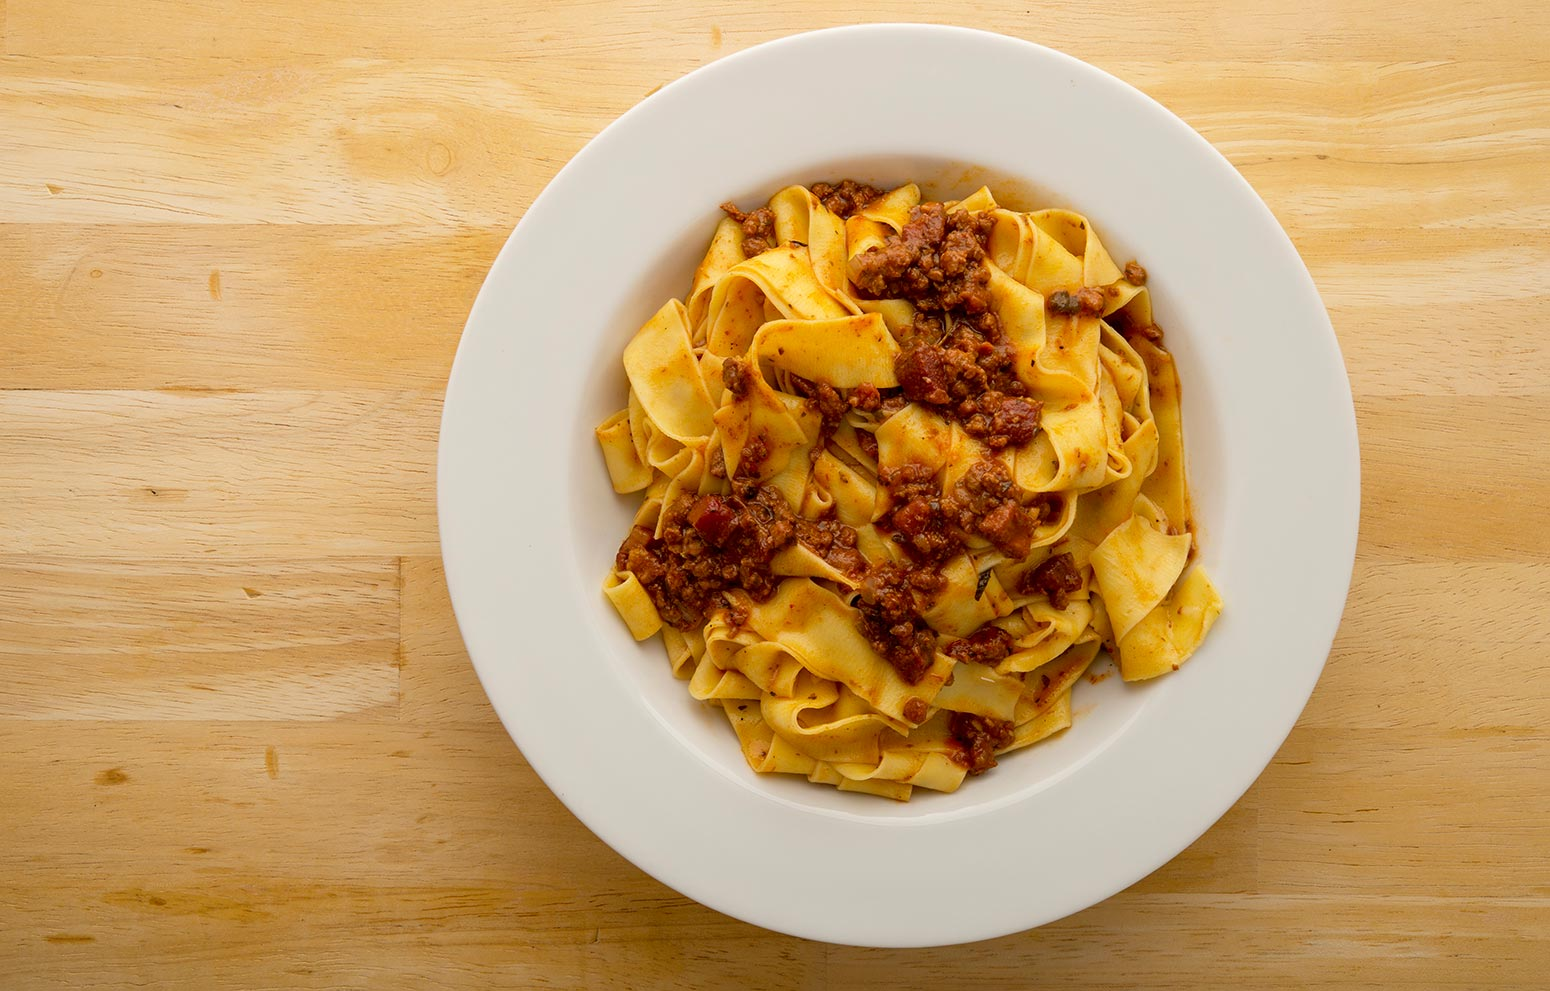 A bowl of homemade pasta and sauce.